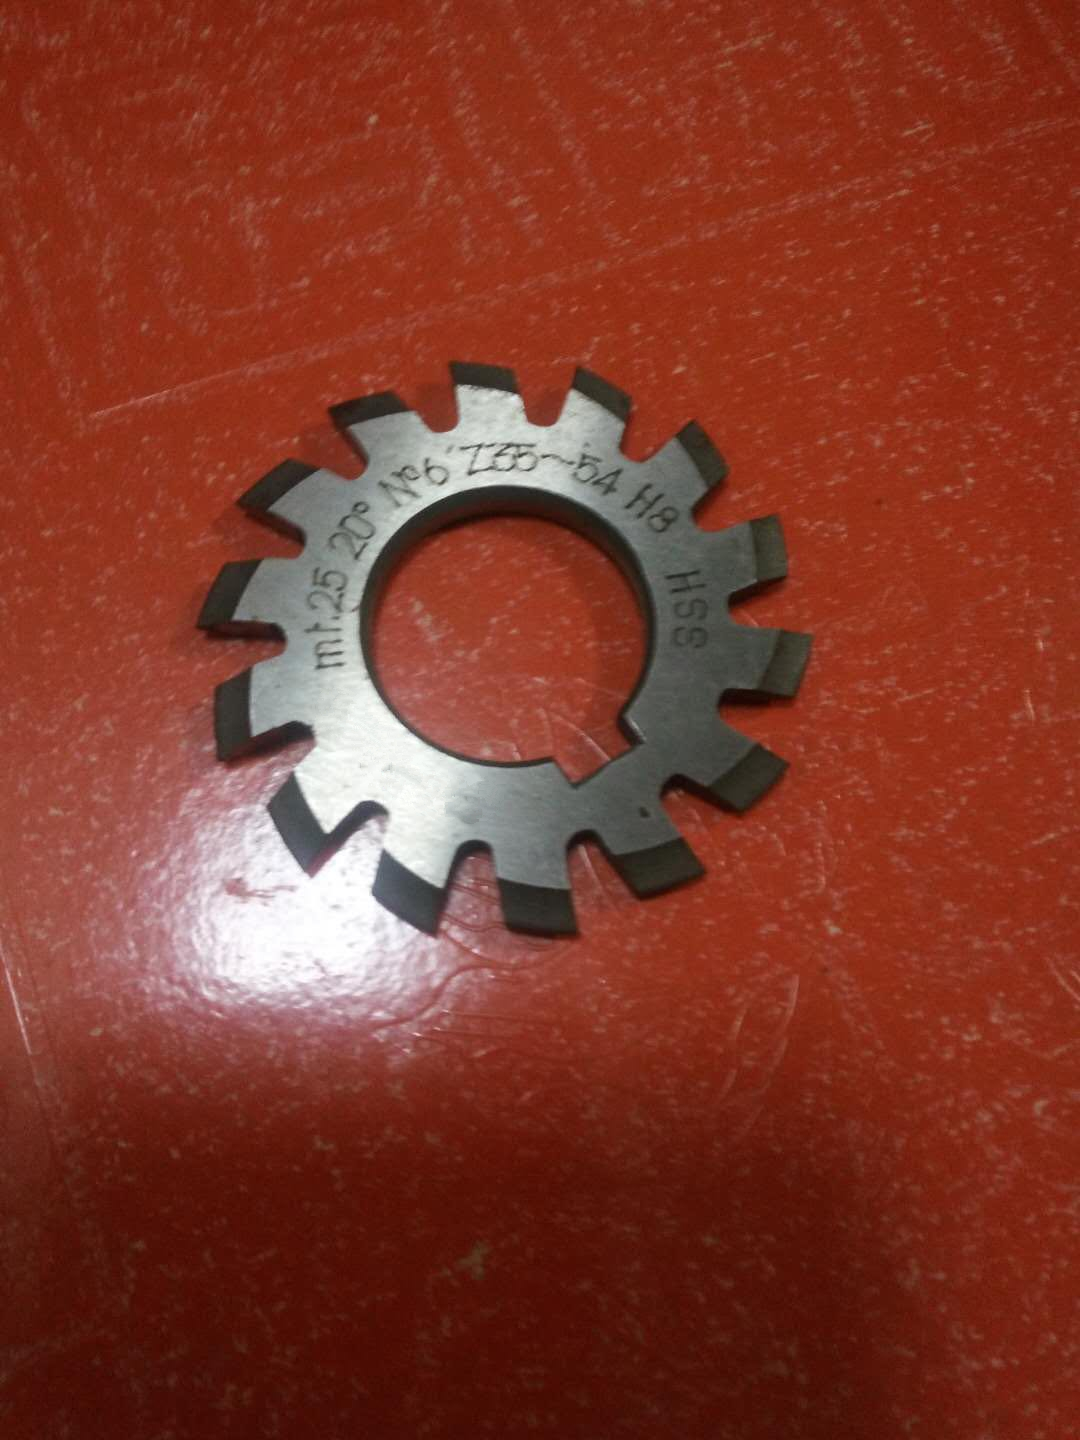 Set 8Pcs Module 1.25 PA20 Bore22 1#2#3#4#5#6#7#8# Involute Gear Cutters M1.25Set 8Pcs Module 1.25 PA20 Bore22 1#2#3#4#5#6#7#8# Involute Gear Cutters M1.25